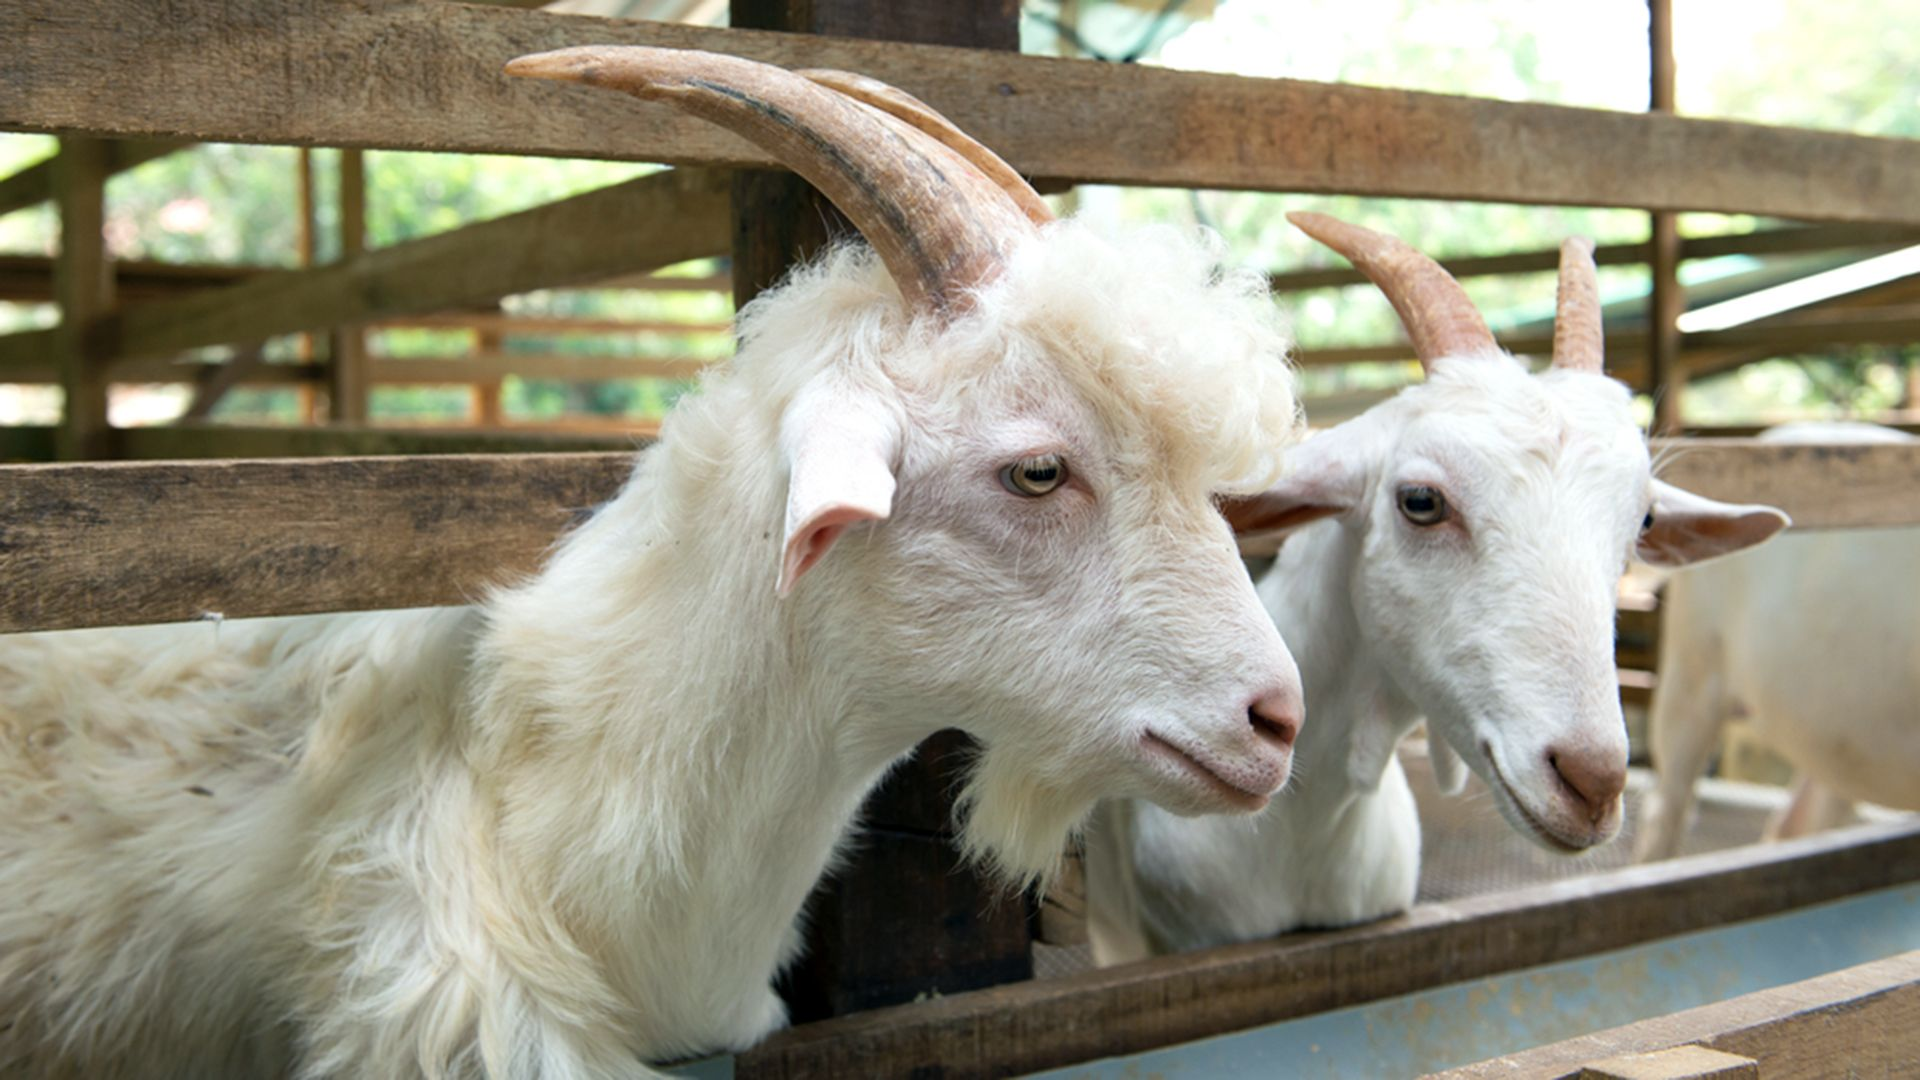 For 150 and an essay, you can win a goat farm! Here's how